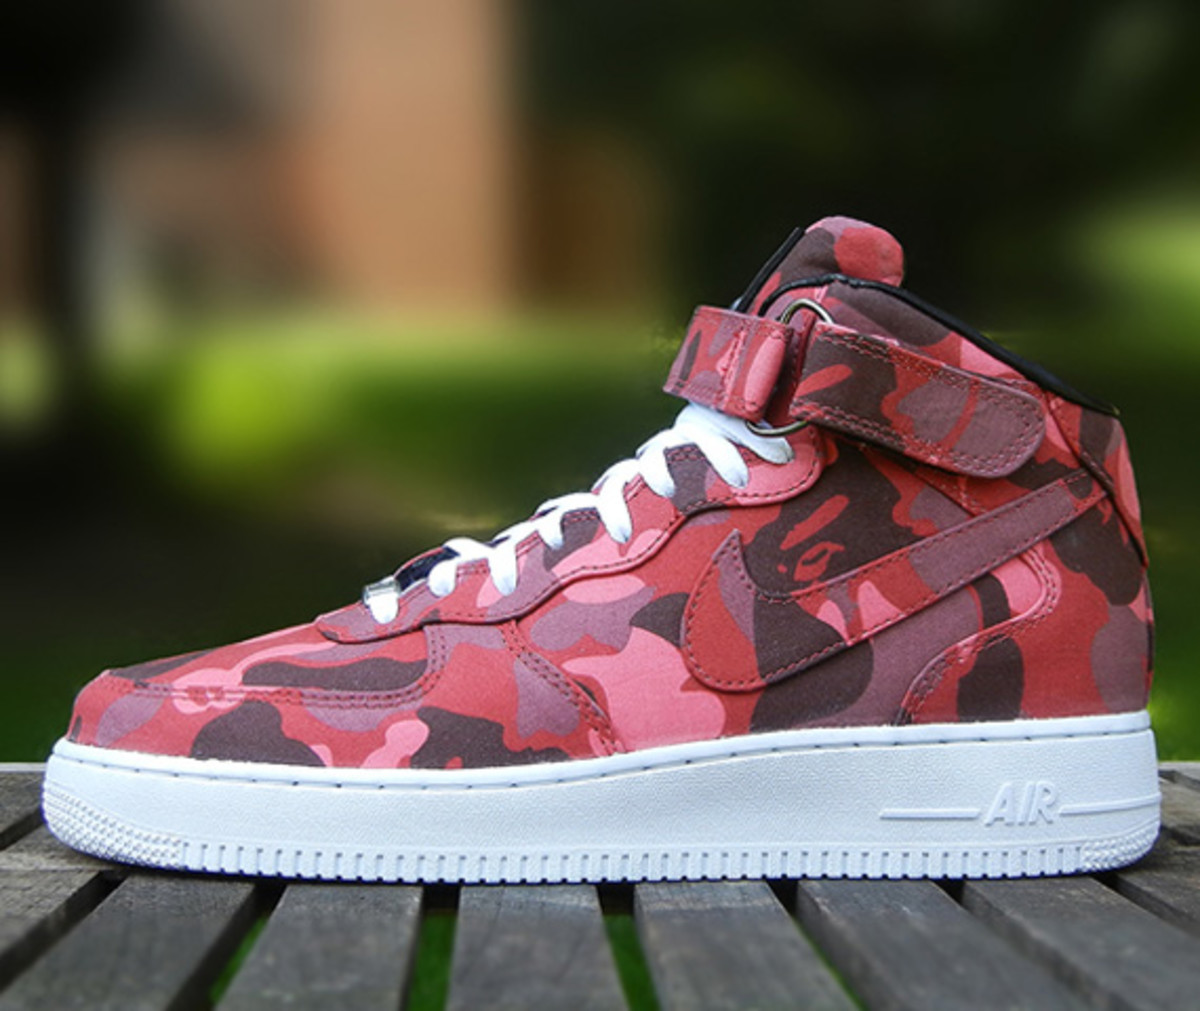 nike-air-force-1-bape-1st-camo-incomparable-custom-by-jbf-customs-07